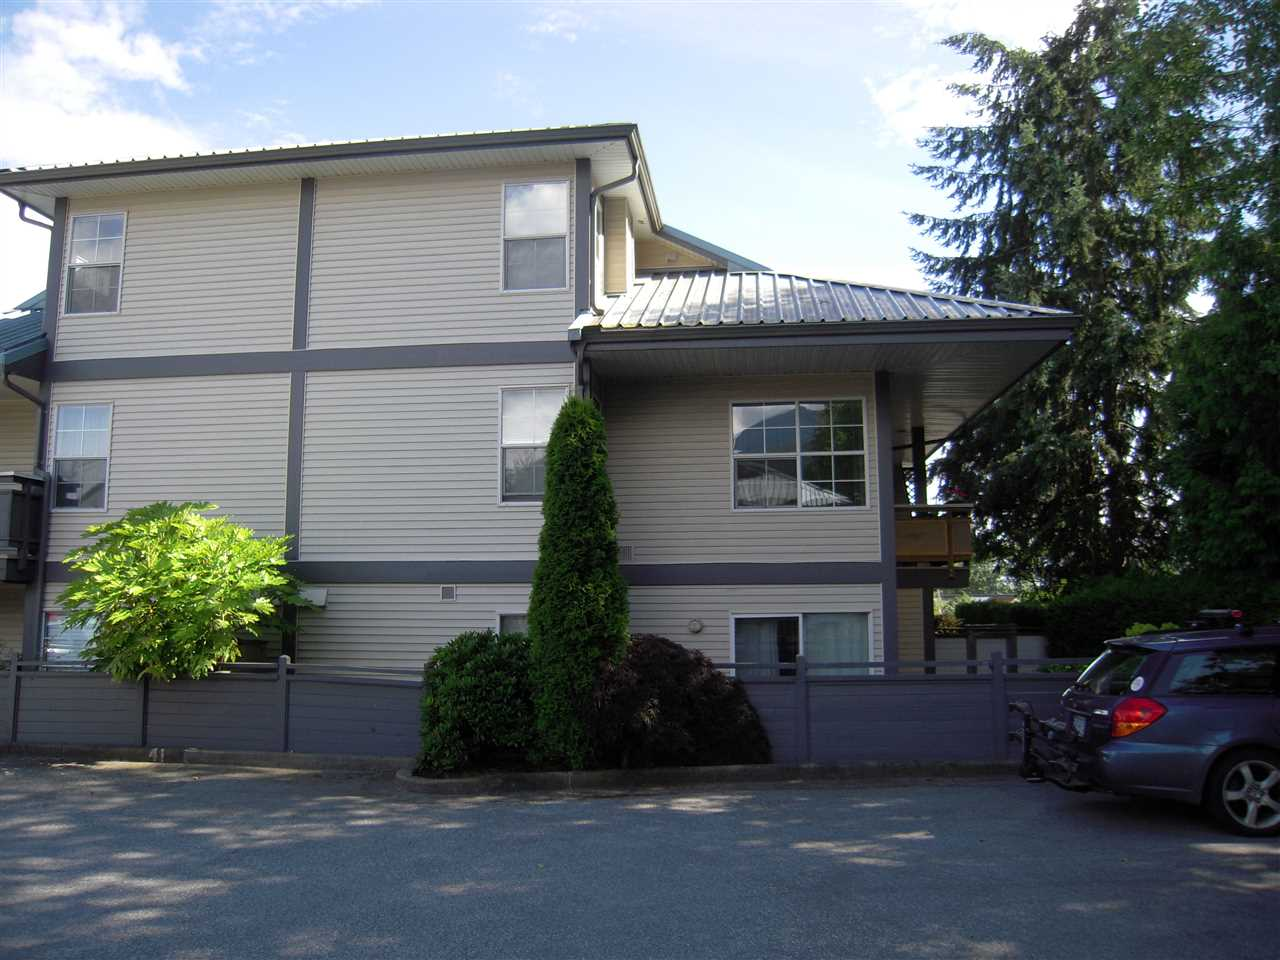 Main Photo: 43 689 PARK Road in Gibsons: Gibsons & Area Condo for sale (Sunshine Coast)  : MLS®# R2081854